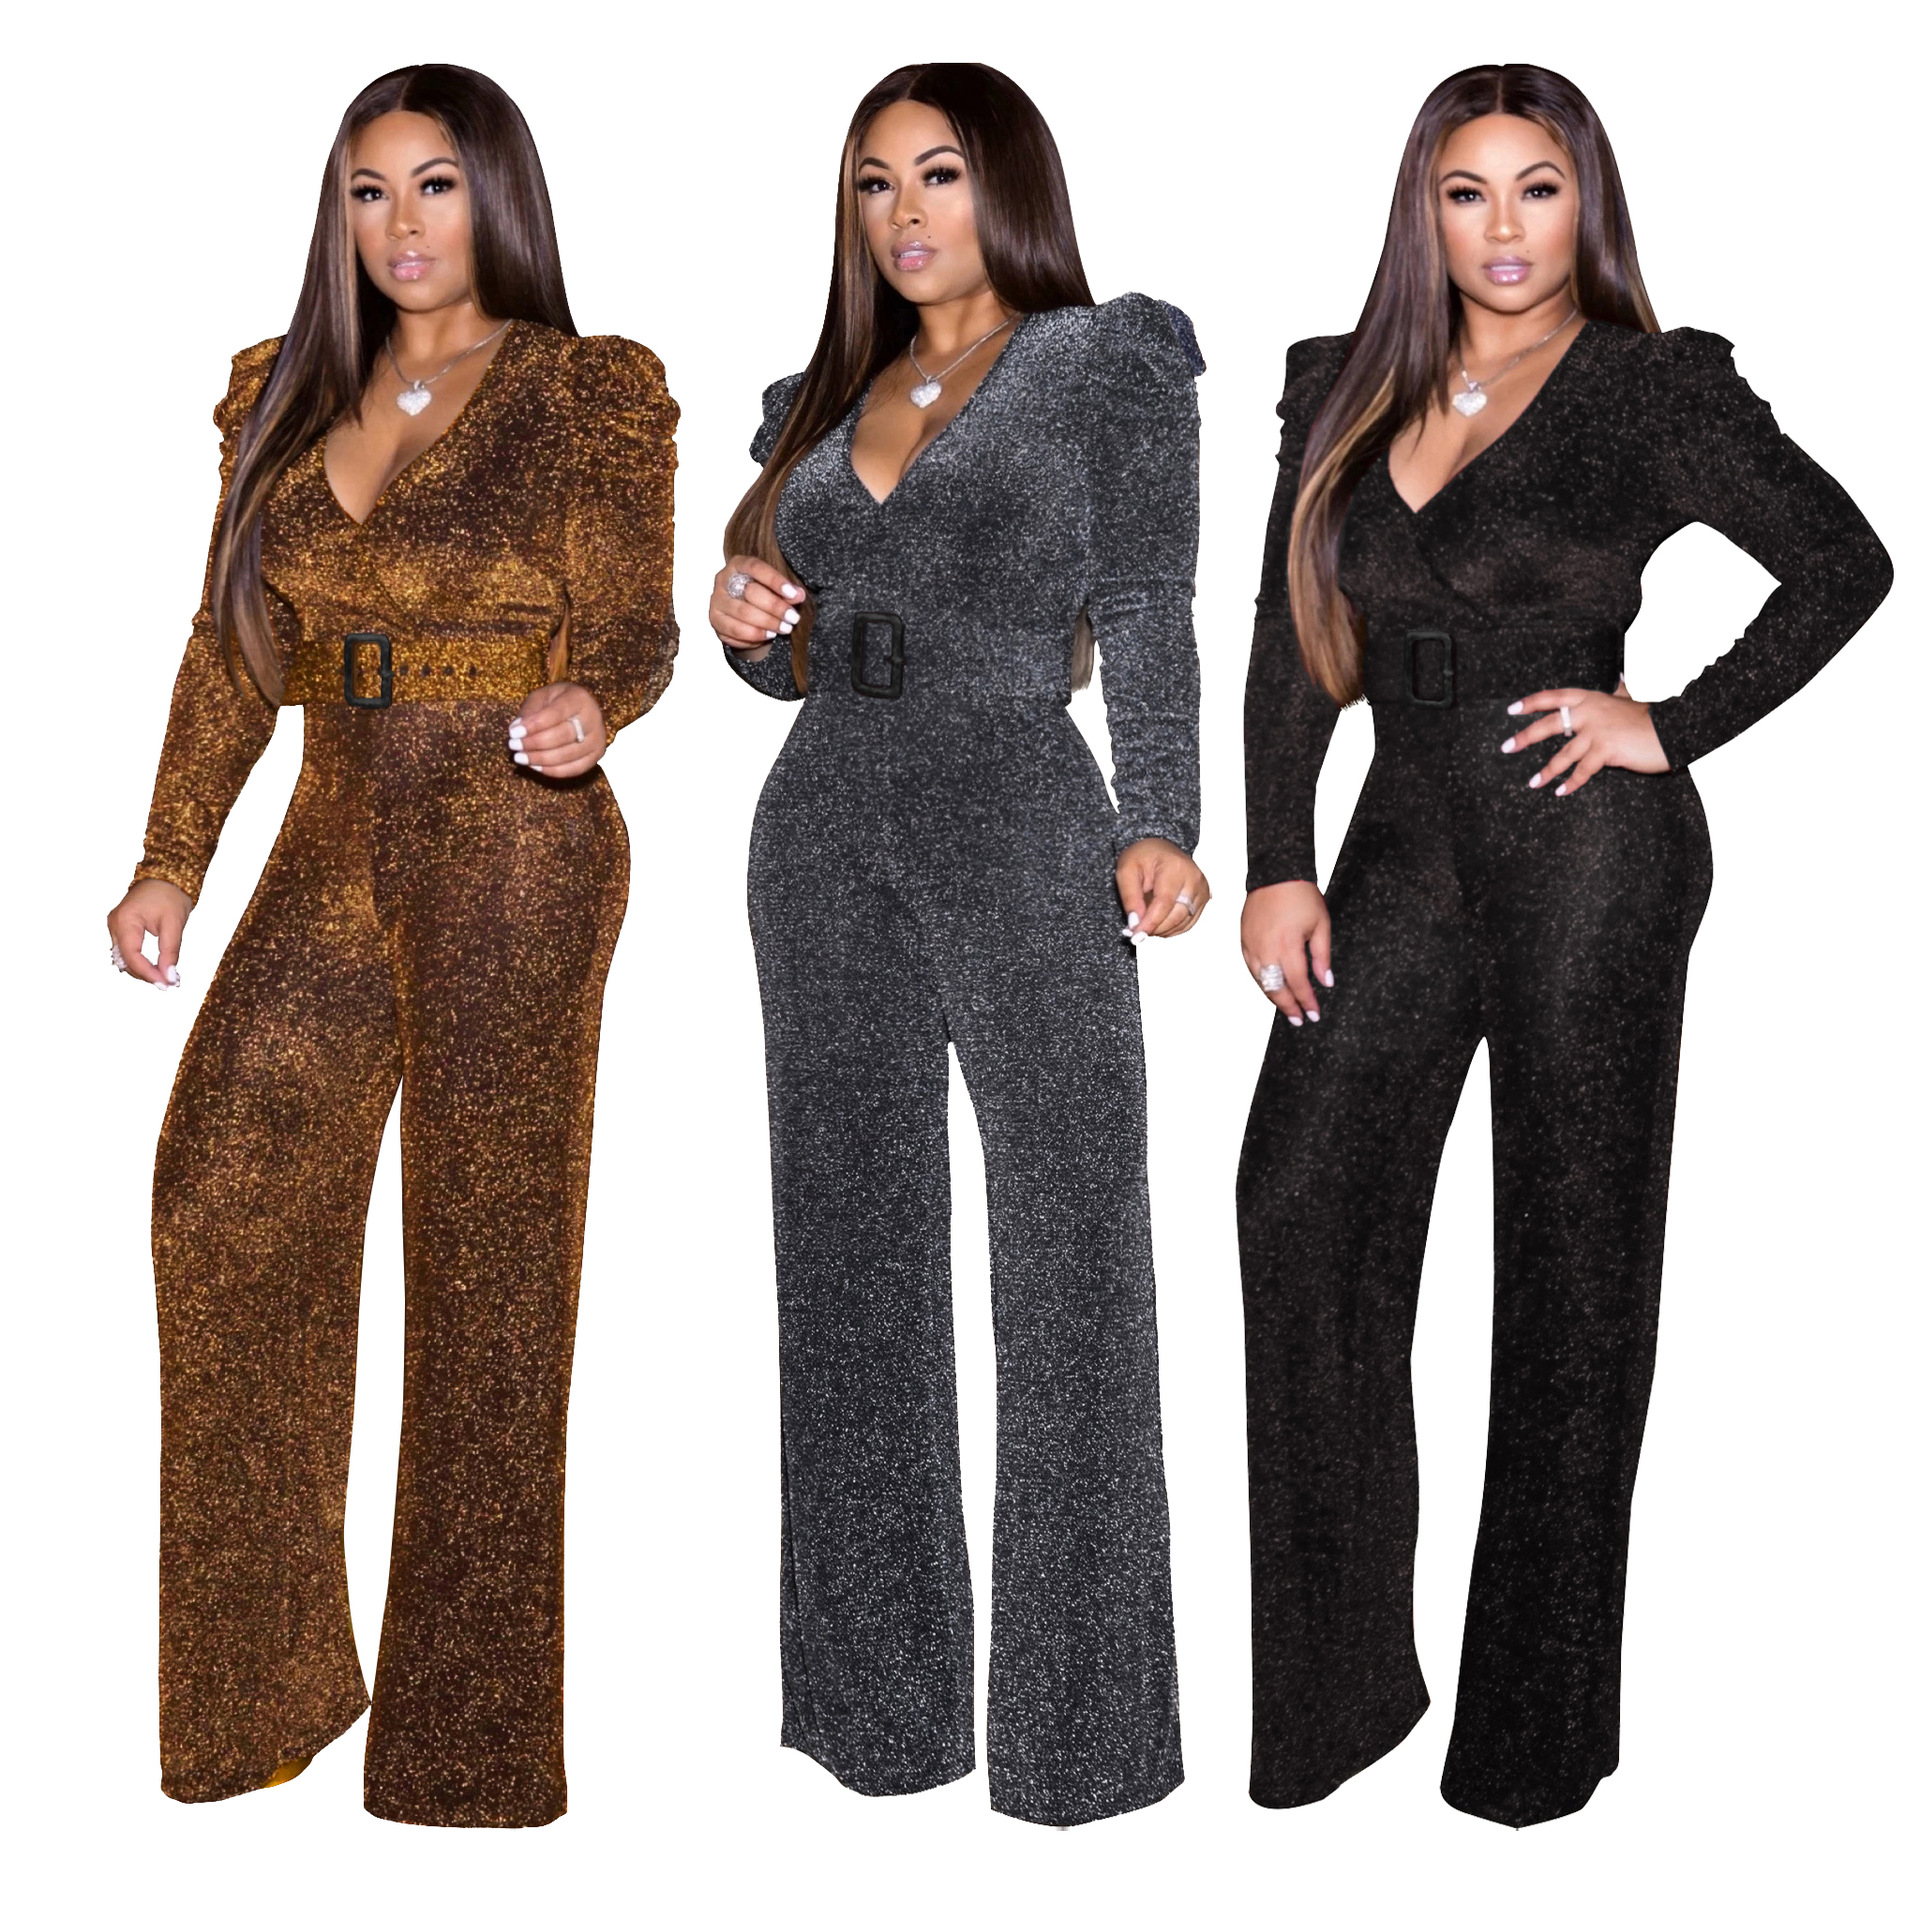 2019 Fashion Latest Design Hot Selling Sexy Fashion V-neck High Stretch Rompers One Piece Long Sleeve Jumpsuits for Women